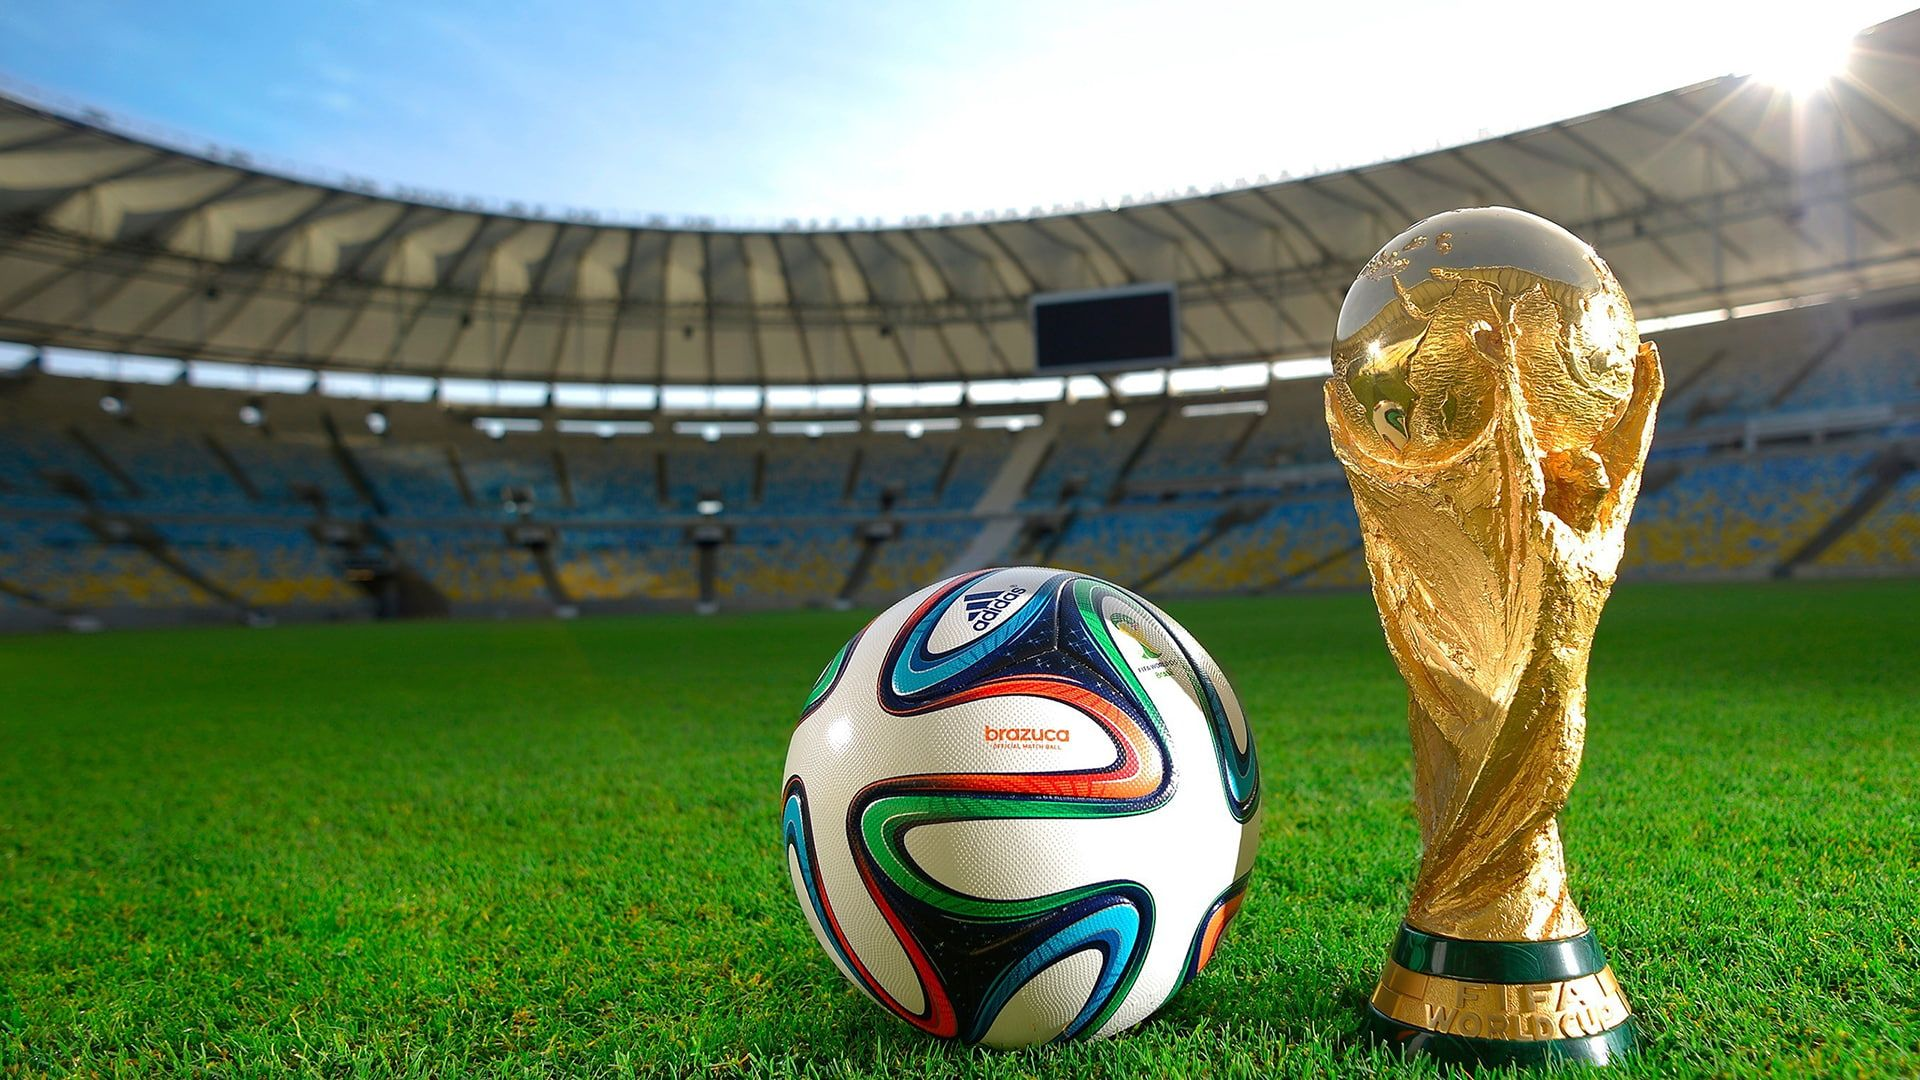 World Cup Soccer Football Trophy Grass Ball Hd Sports Grass Football World Soccer Ball Cup Trophy 1080p Wall In 2020 Soccer Fifa World Cup World Cup Stadiums